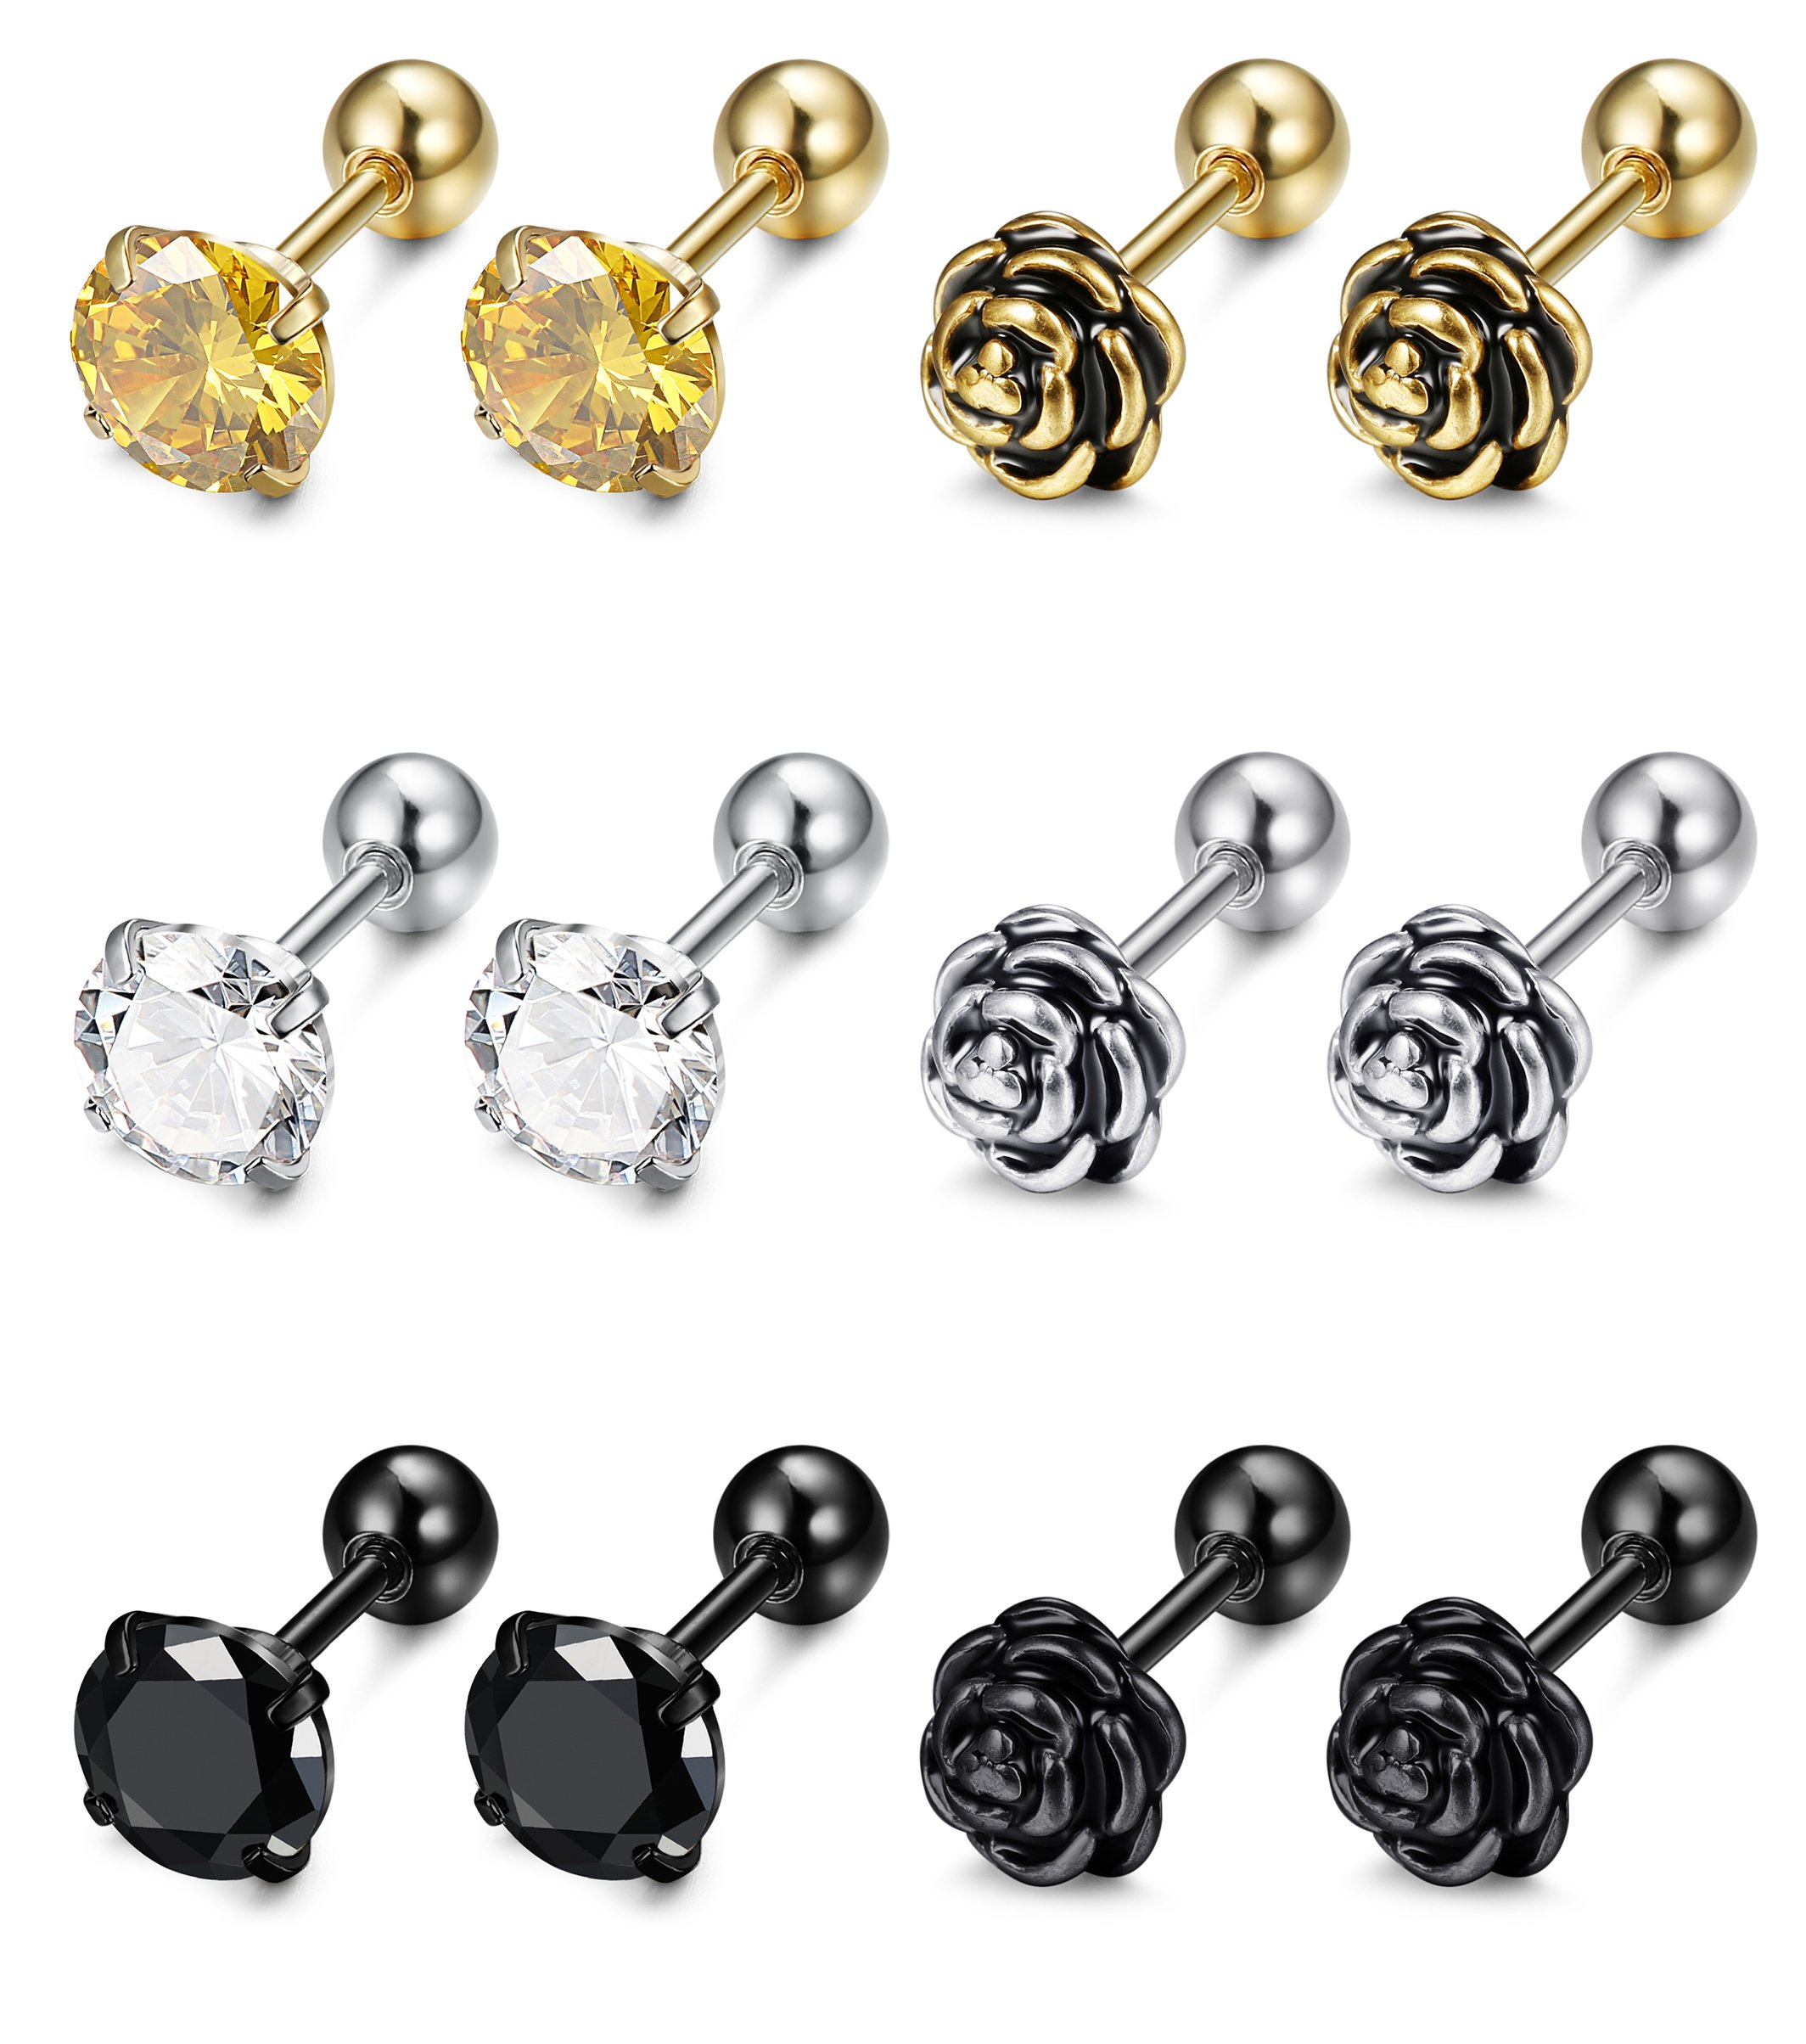 FIBO STEEL 6 Pairs 16G Stainless Steel Flower Cartilage Stud Earrings for Men Women Helix tragus Daith Cartilage Piercing Jewelry